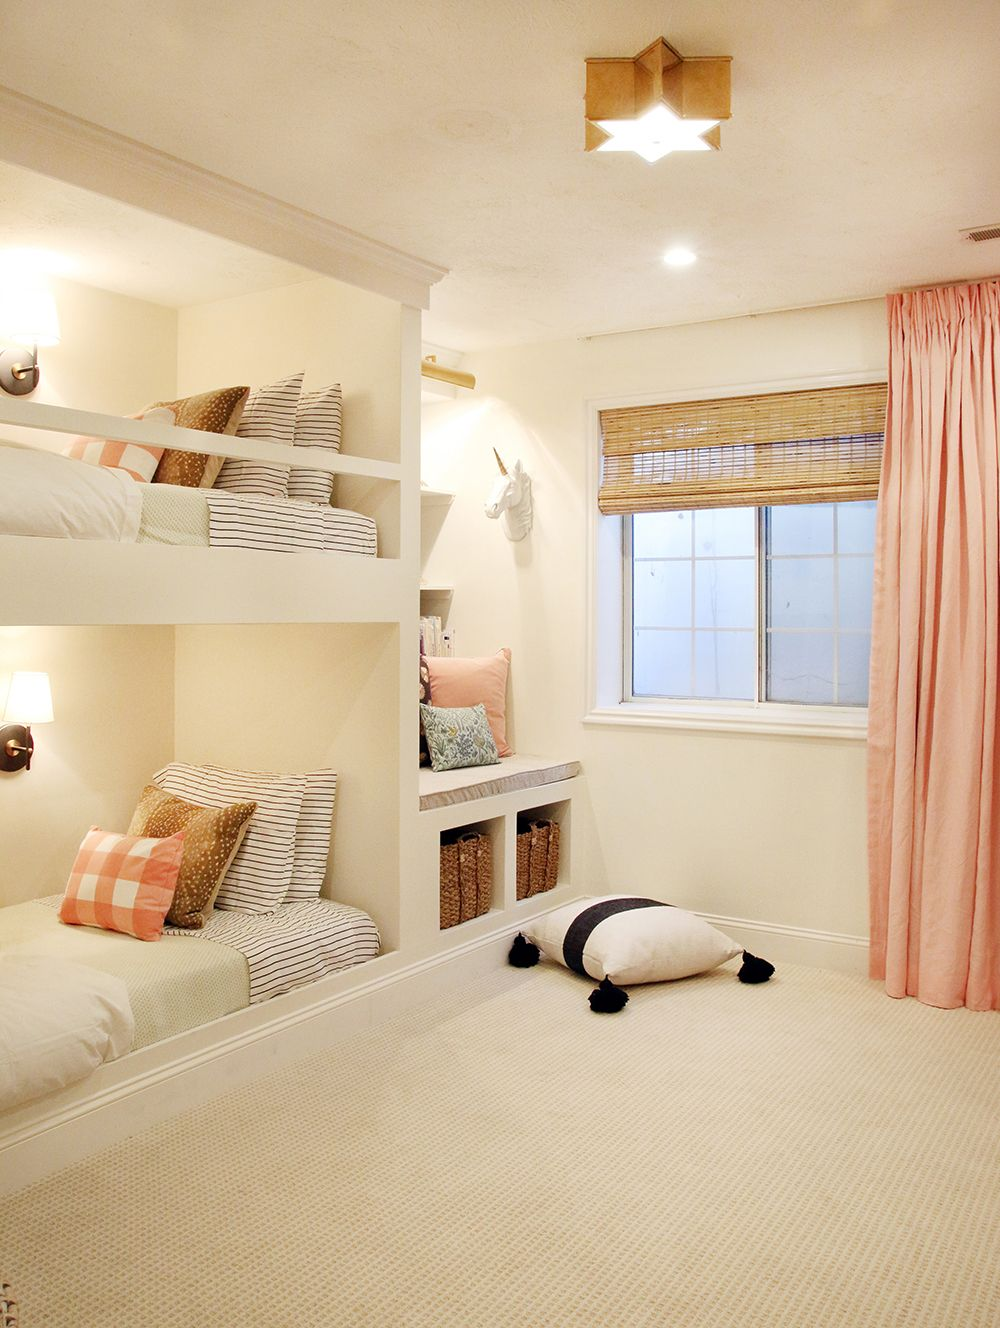 Charming The Sweetest Girlsu0027 Room With Built In Bunk Beds, A Starry Brass Light  Fixture From @chrislovesjulia